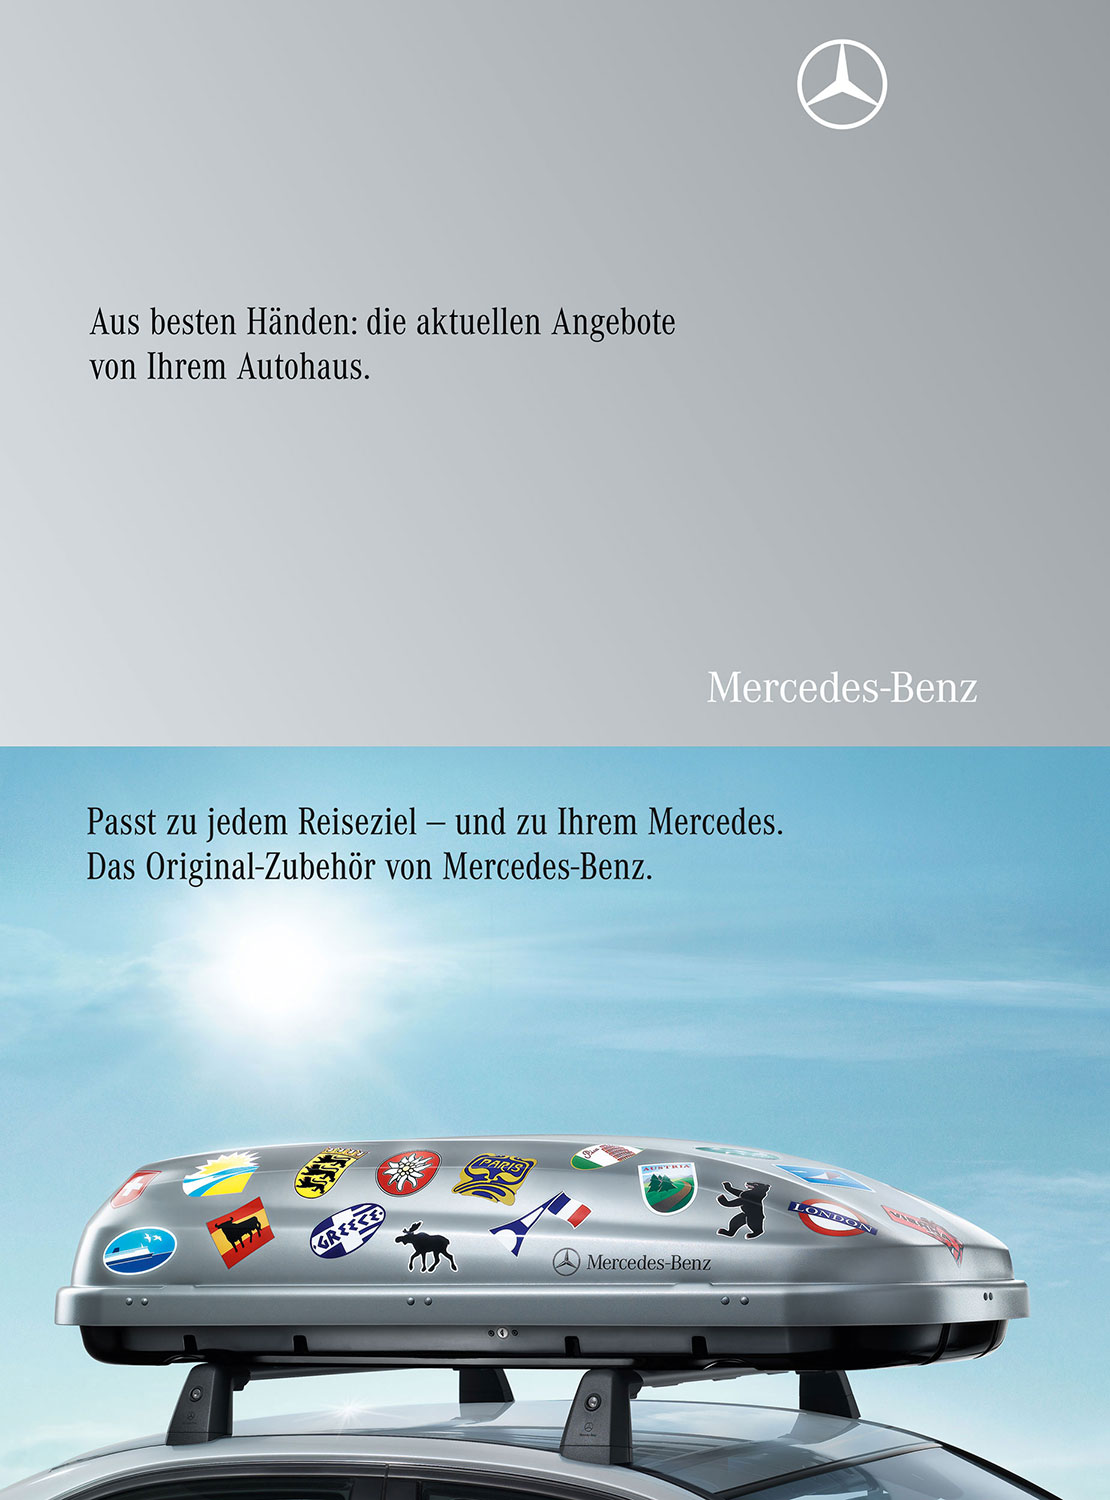 Advertising Still life Photographie Fotografie StudioMercedes Benz Services Dachbox Original Zubehör Still life Idris Kolodziej